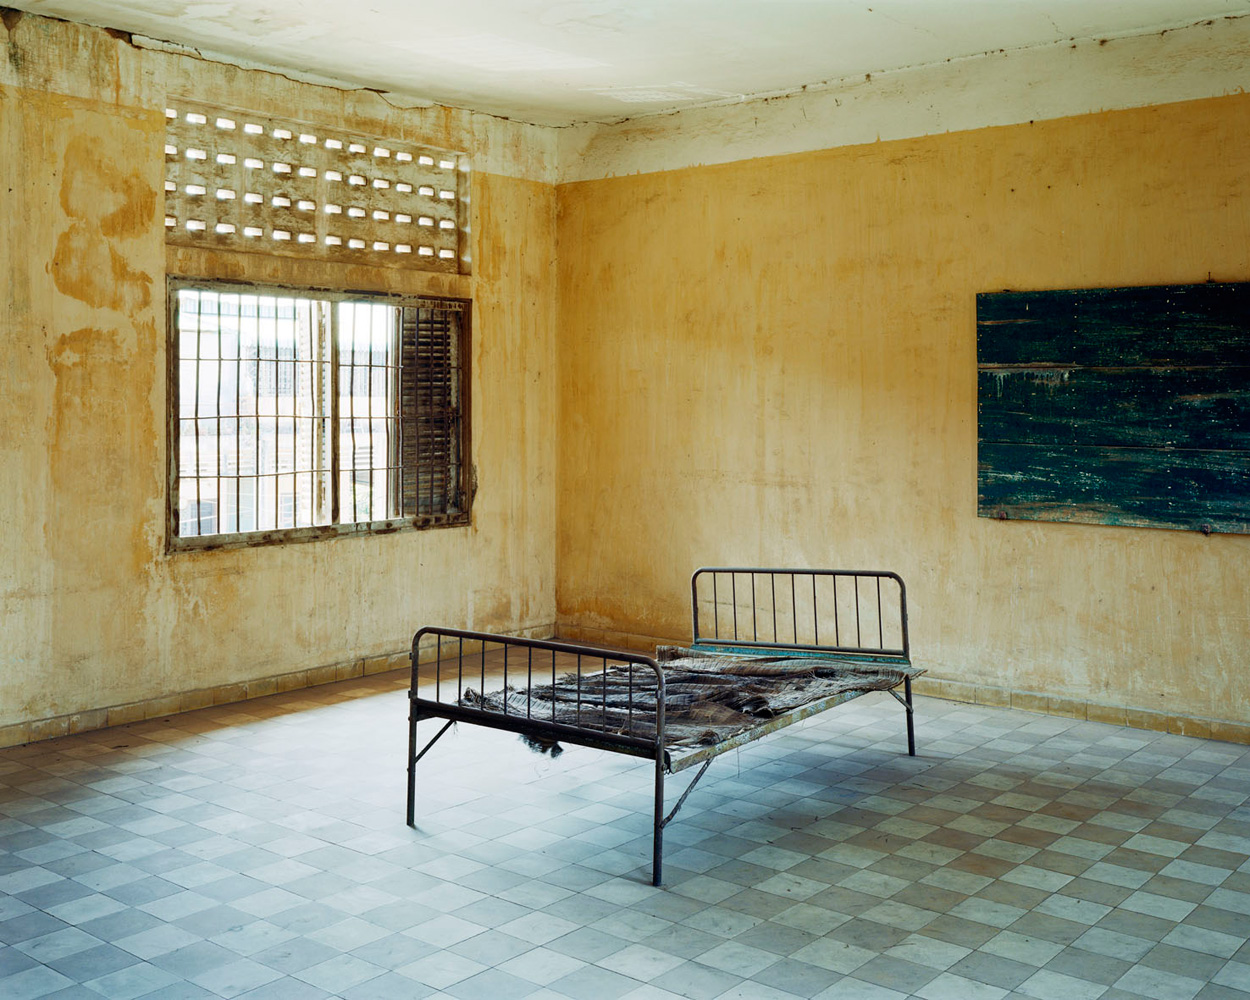 """Tuol Sleng Genocide Museum , Phnom Penh – Cambodia. 2010.Torture bed in Building  A  of a secret prison, which in 1977 and 1978 was converted into a set of rooms with windows that were paneled with glass to minimize the sound of prisoners' screams heard outside the facility in times of torture. Building """"A"""" was used for detaining cadres who were accused of leading the uprising against the Pol Pot revolution. On Jan. 7, 1979, the government collected all the evidence in the prison such as photographs, films, prisoner confession archives, torture tools, shackles and victims' corpses. Now the evidence of the criminal regime is on display for visitors."""